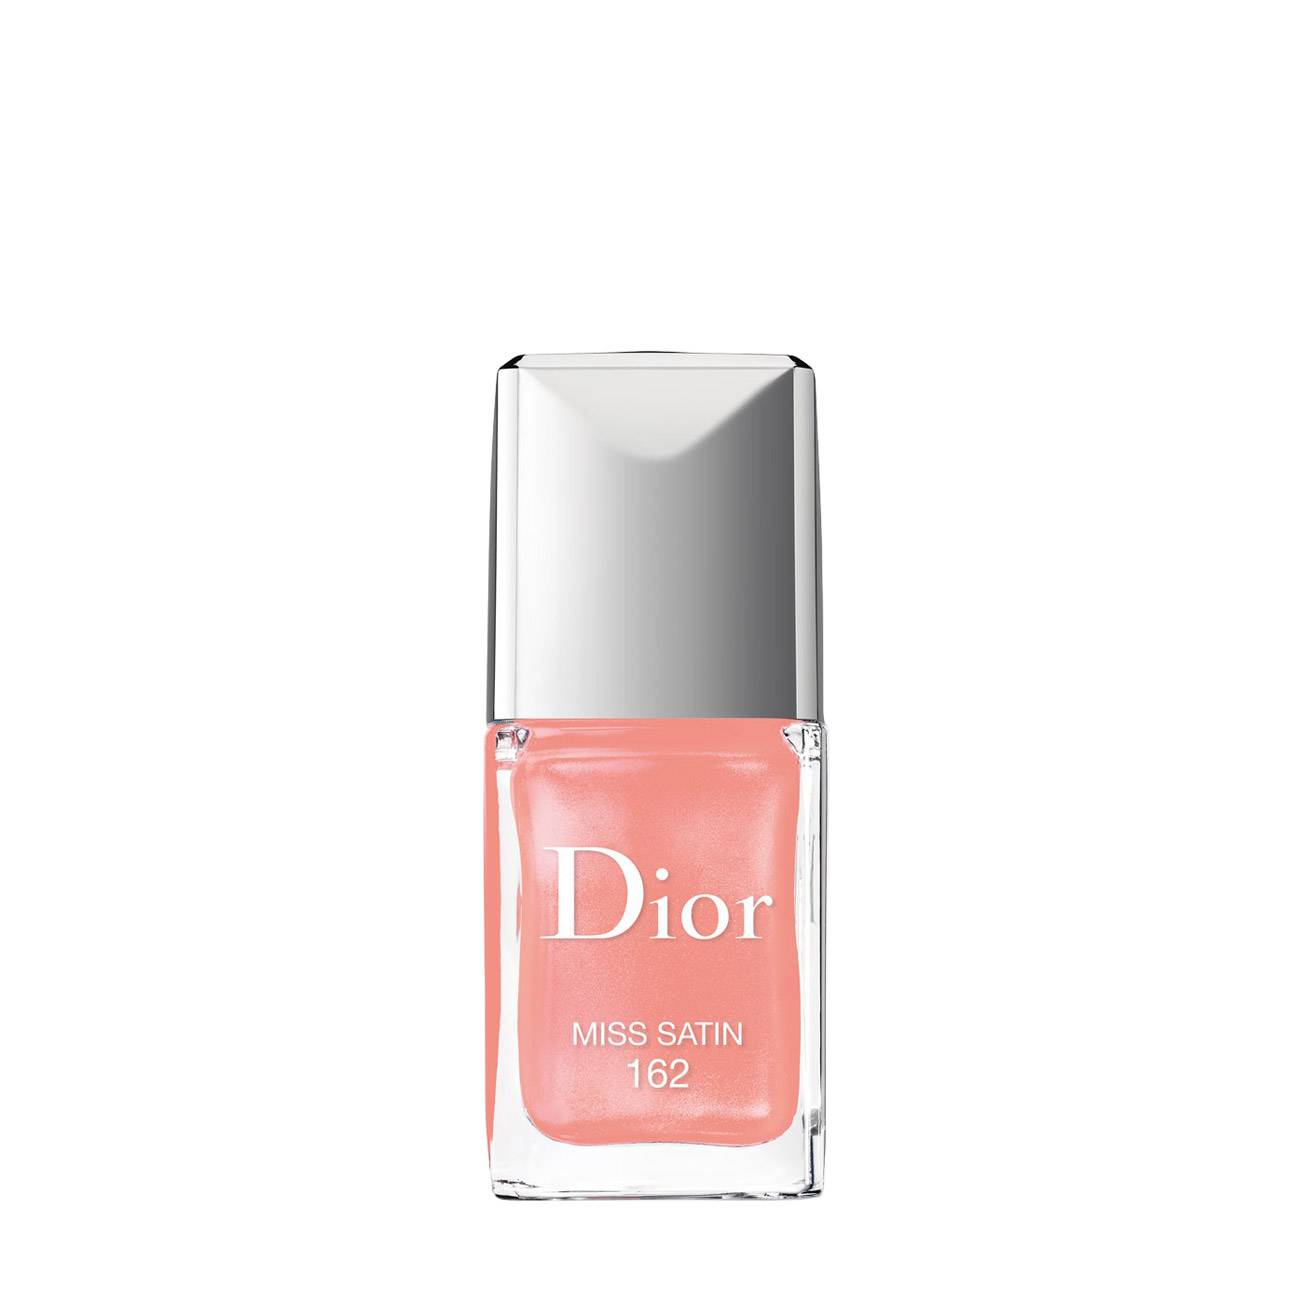 Dior Vernis 162 10 Ml Dior imagine 2021 bestvalue.eu